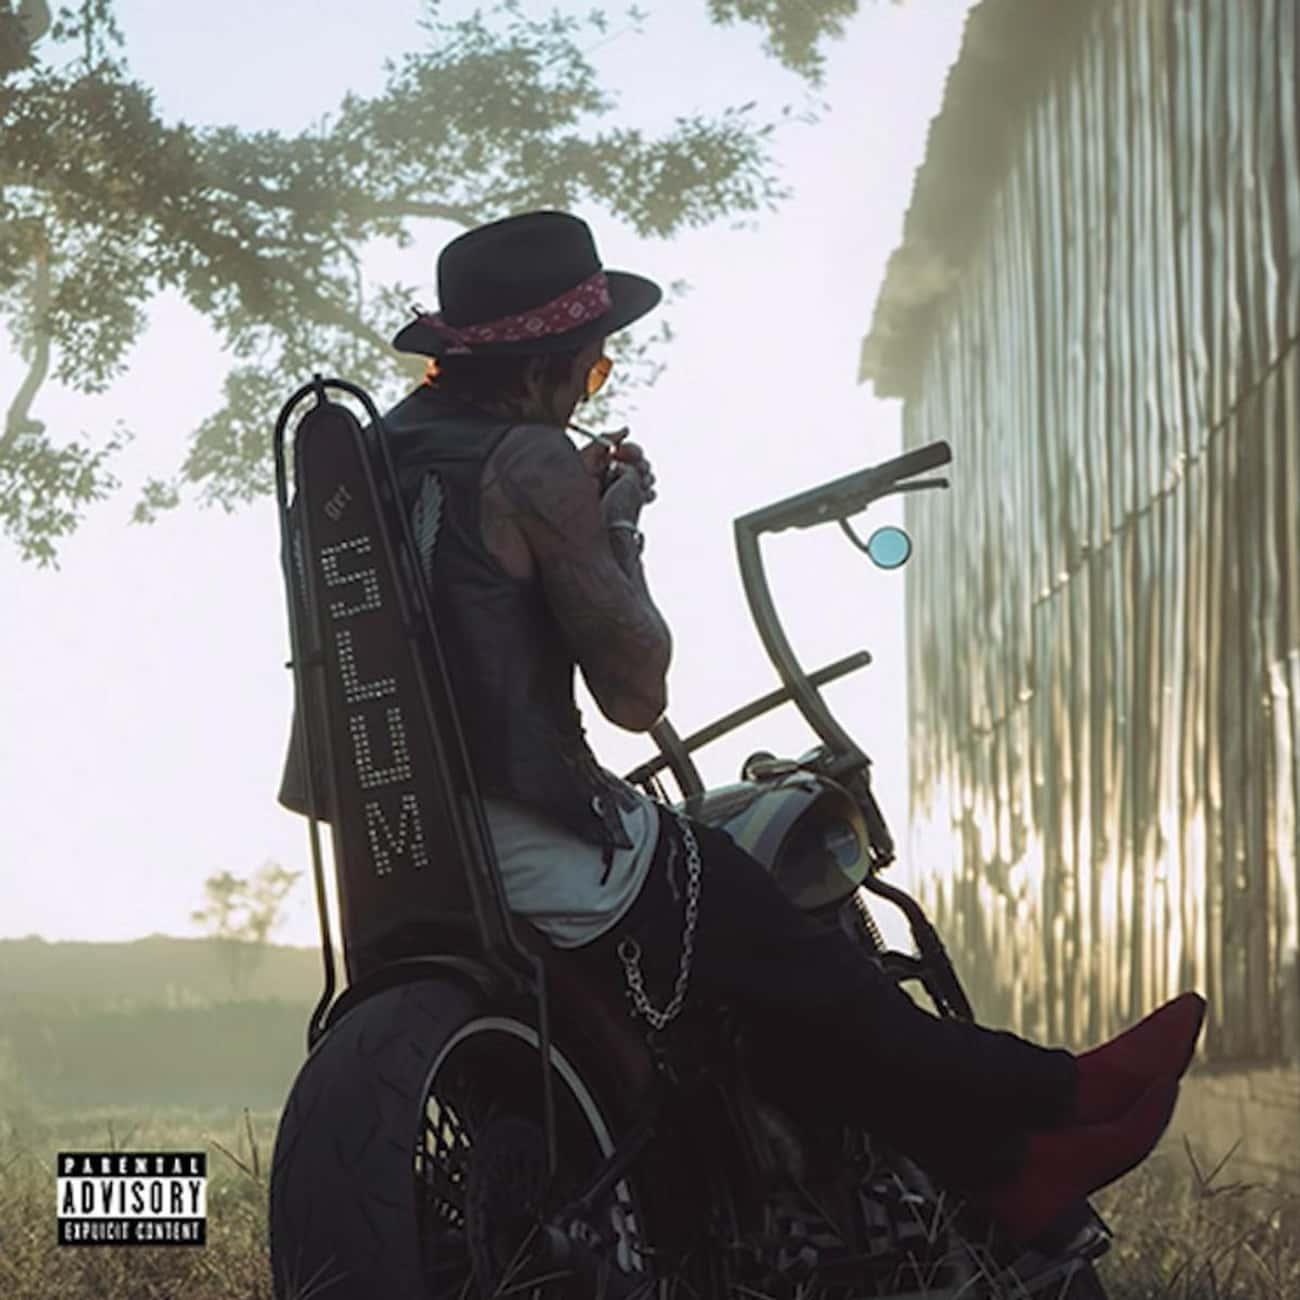 Ghetto Cowboy is listed (or ranked) 2 on the list The Best Yelawolf Albums, Ranked